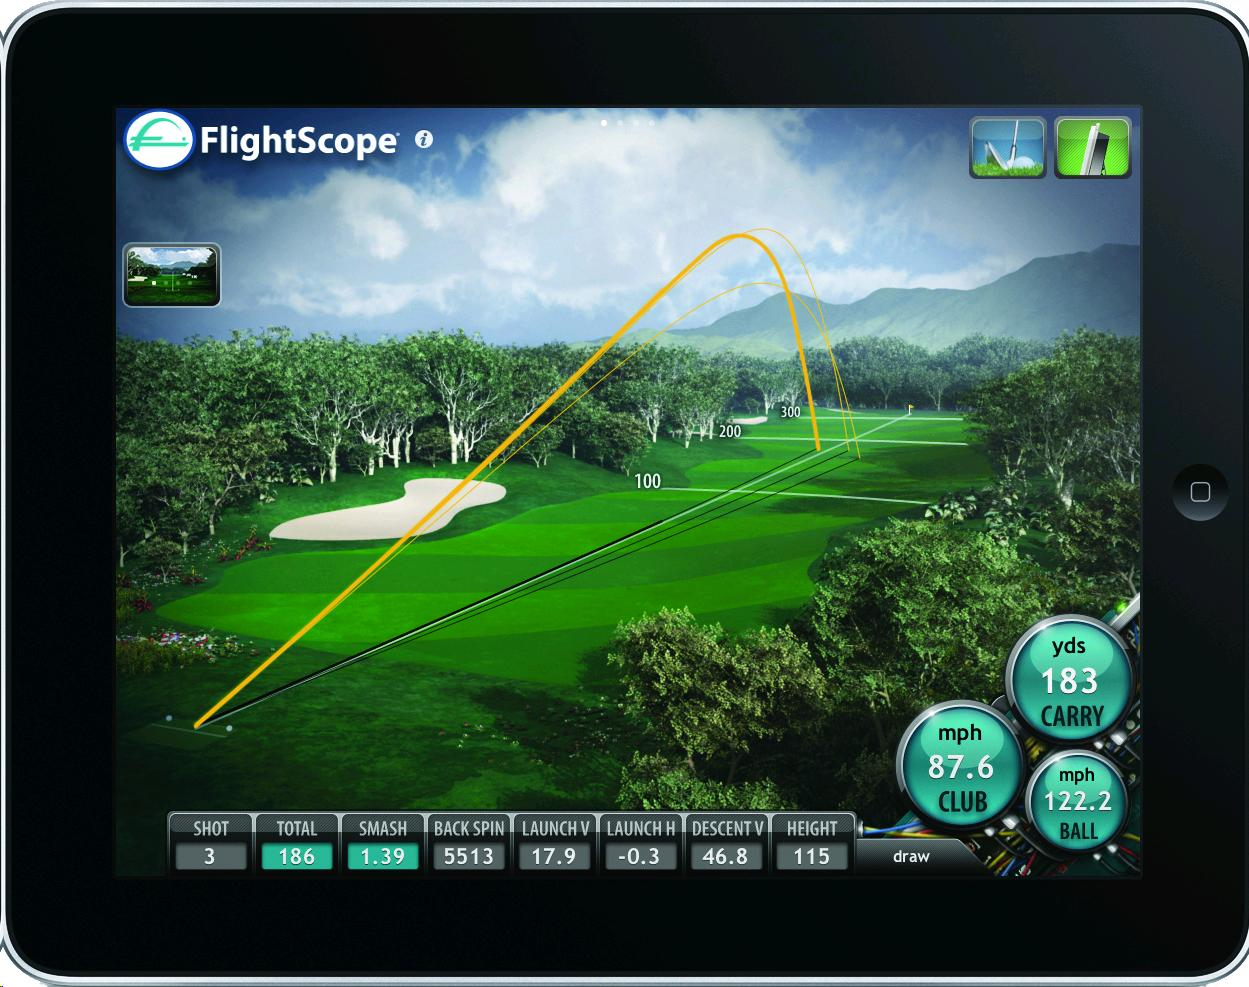 Flightscope data